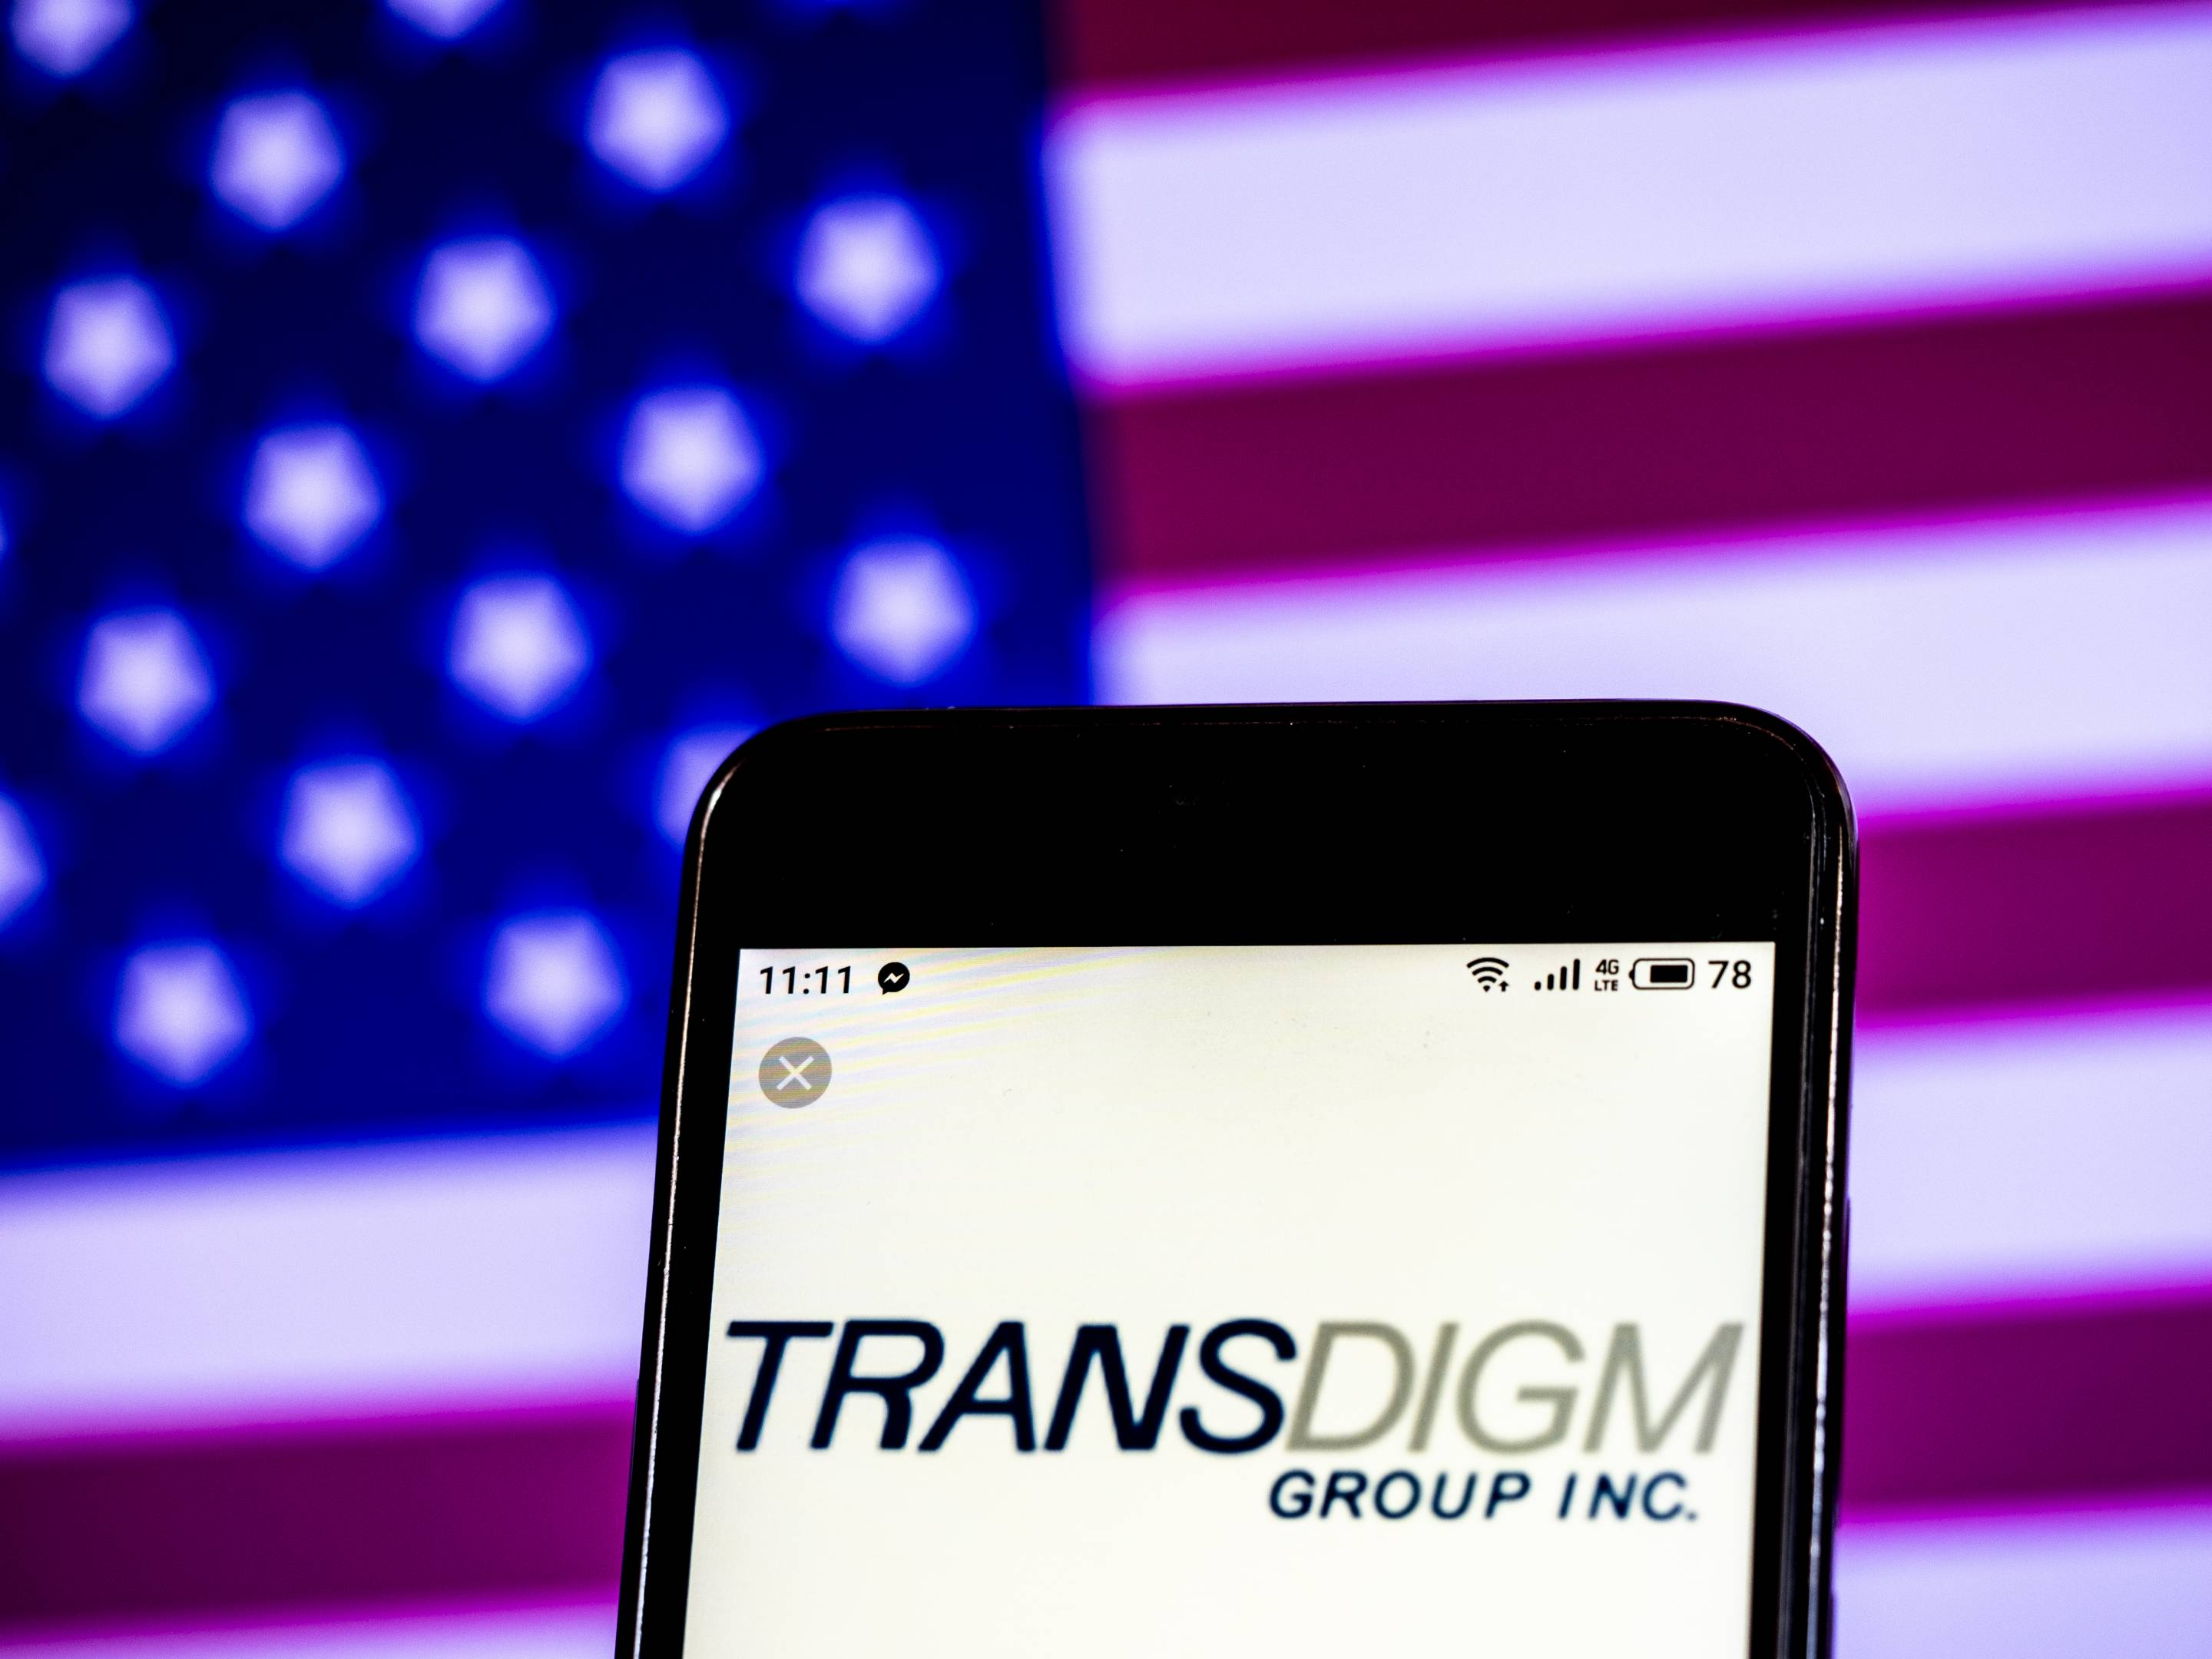 TransDigm Group Manufacturing company logo seen displayed on